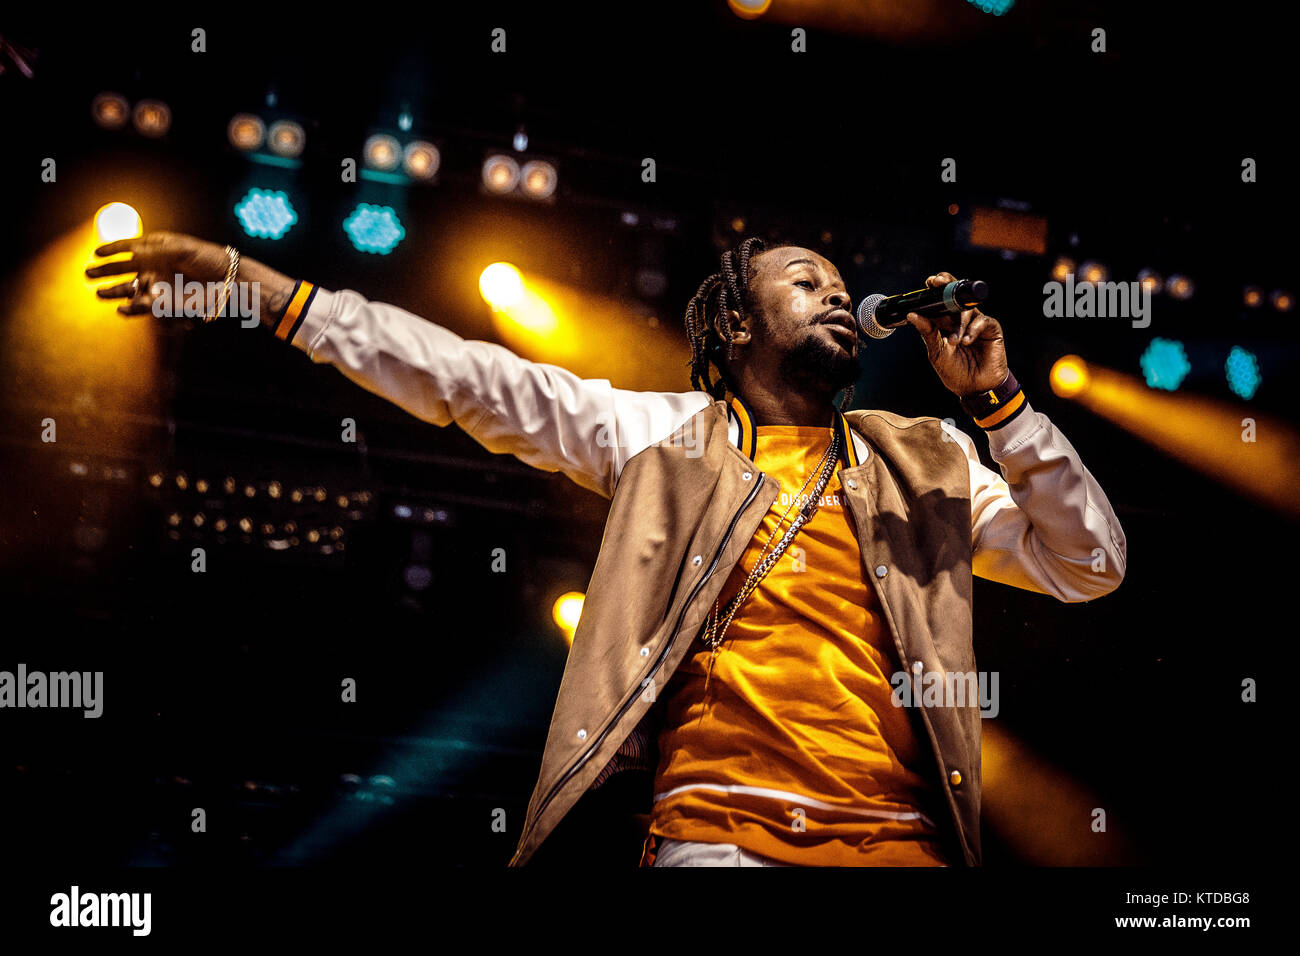 The Jamaican singer, songwriter and deejay Popcaan performs a live